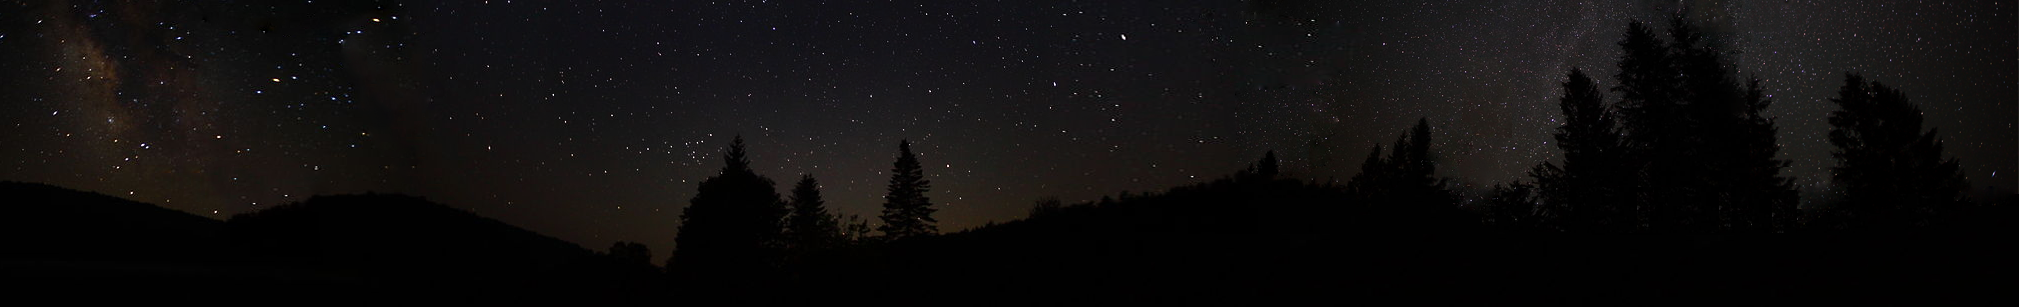 File Photoshoped Panoramic View Of Forest At Night Png